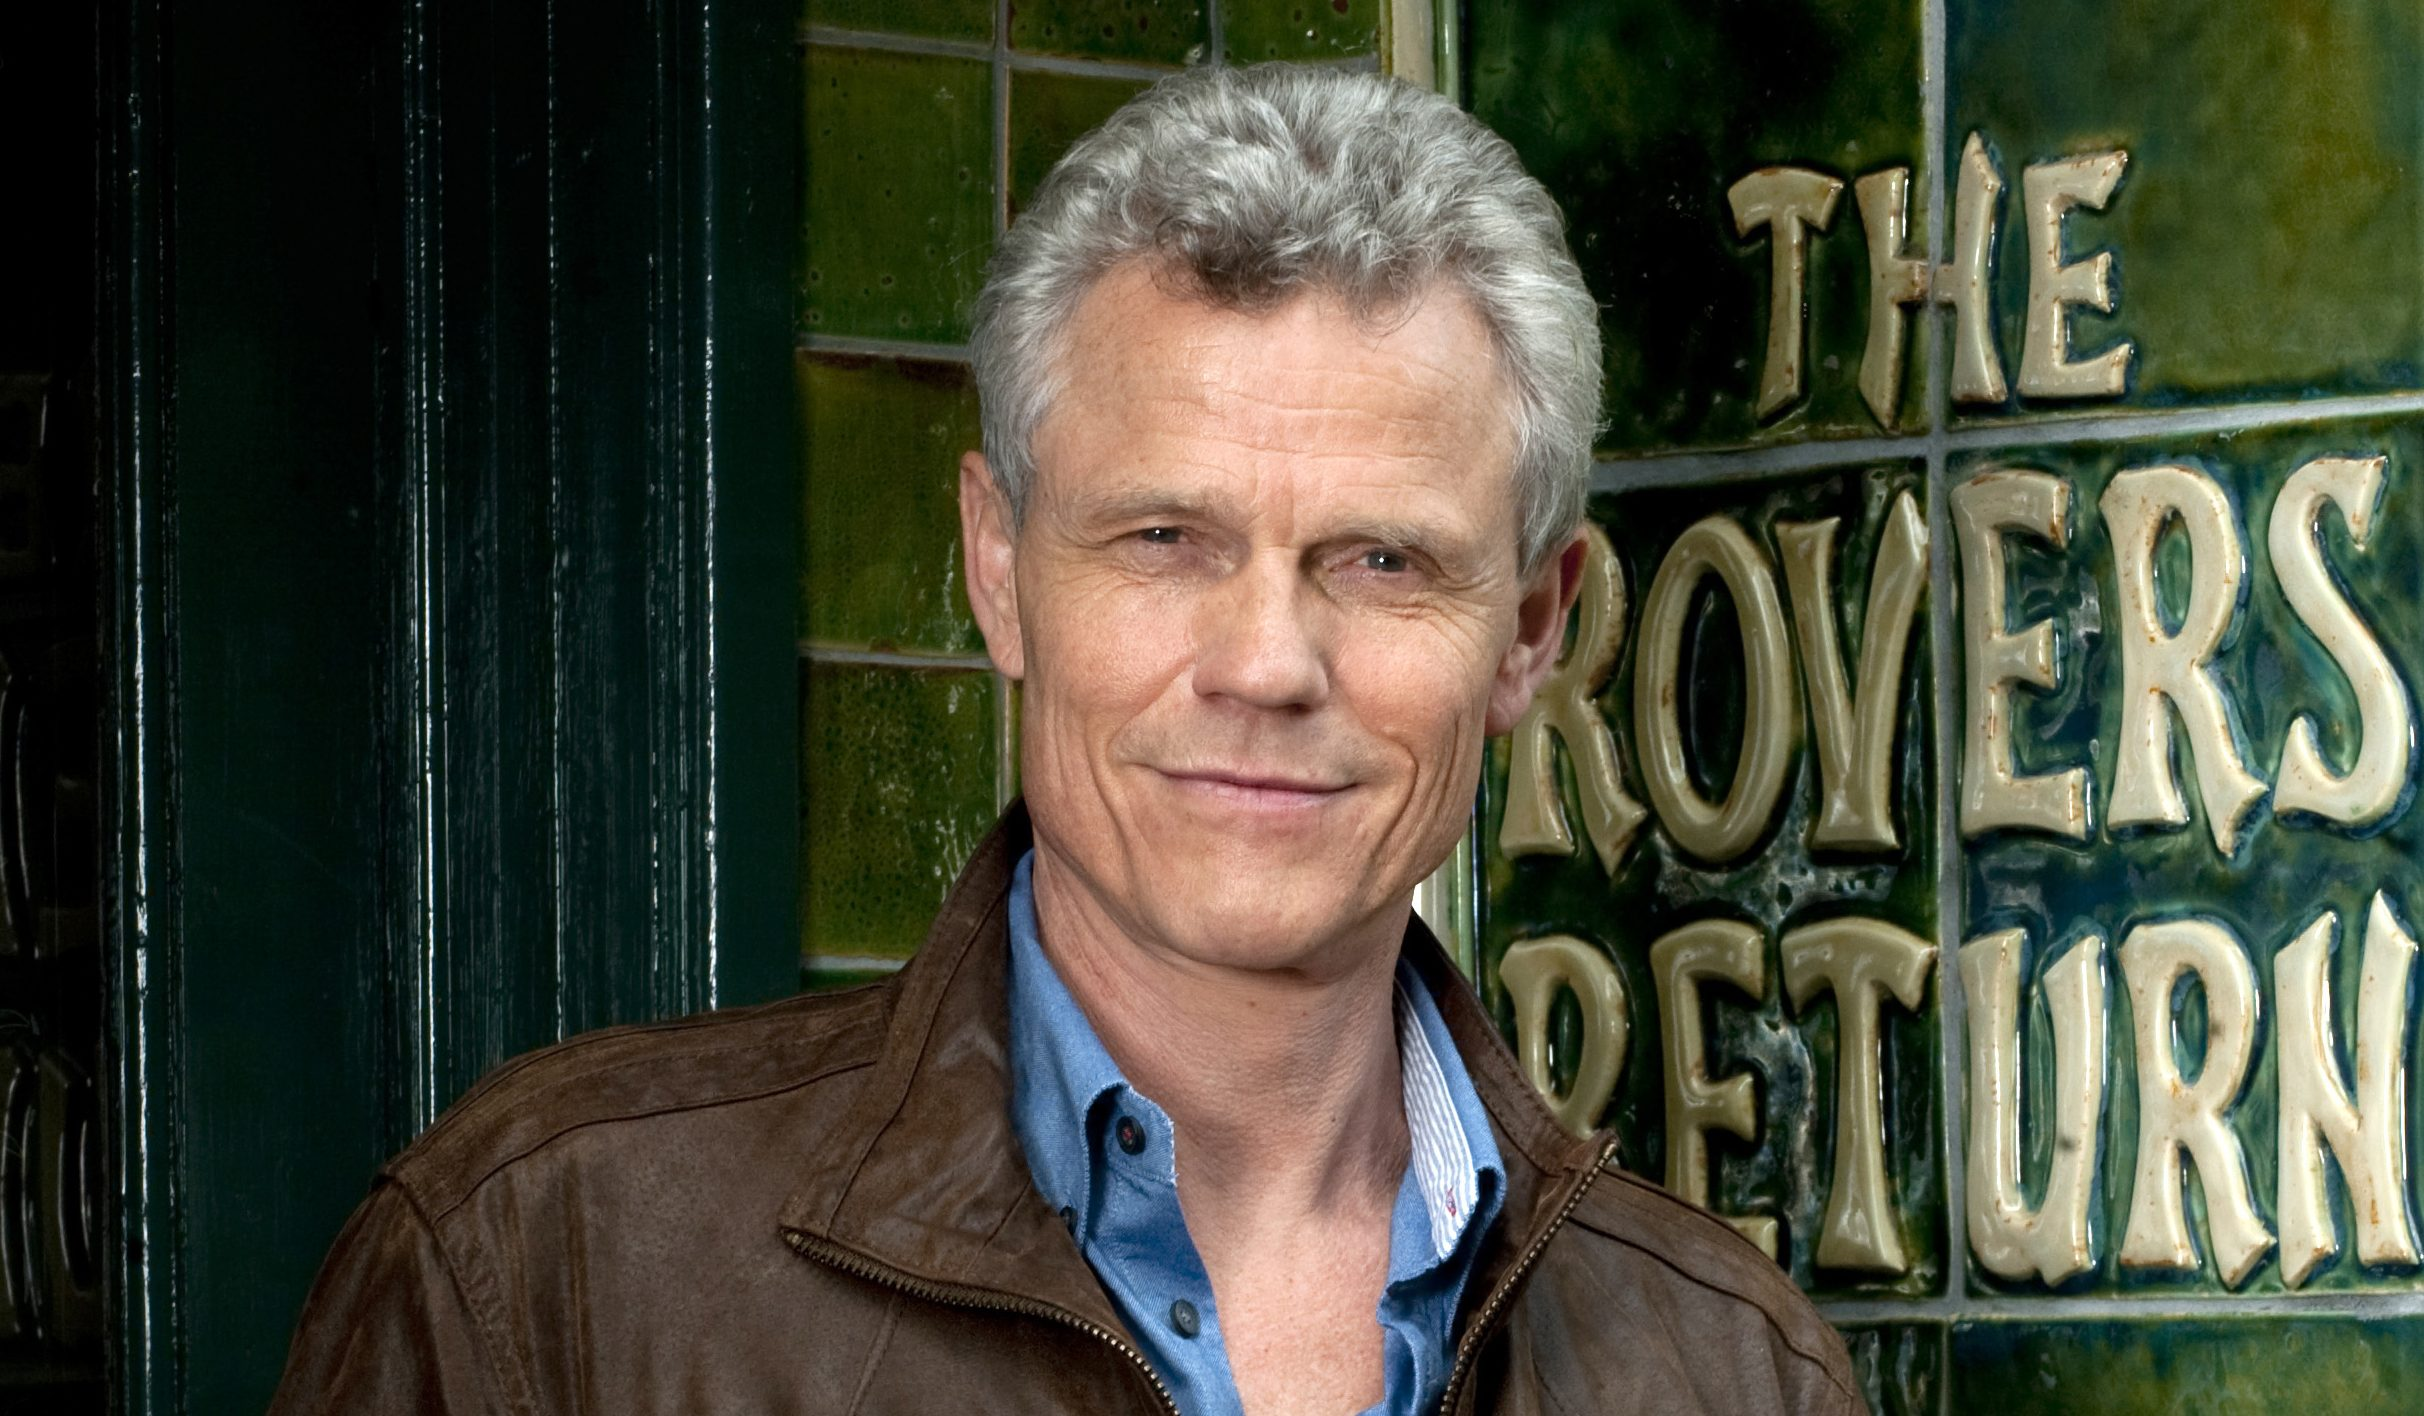 Coronation Street and Butterflies star Andrew Hall dies after short illness at 65